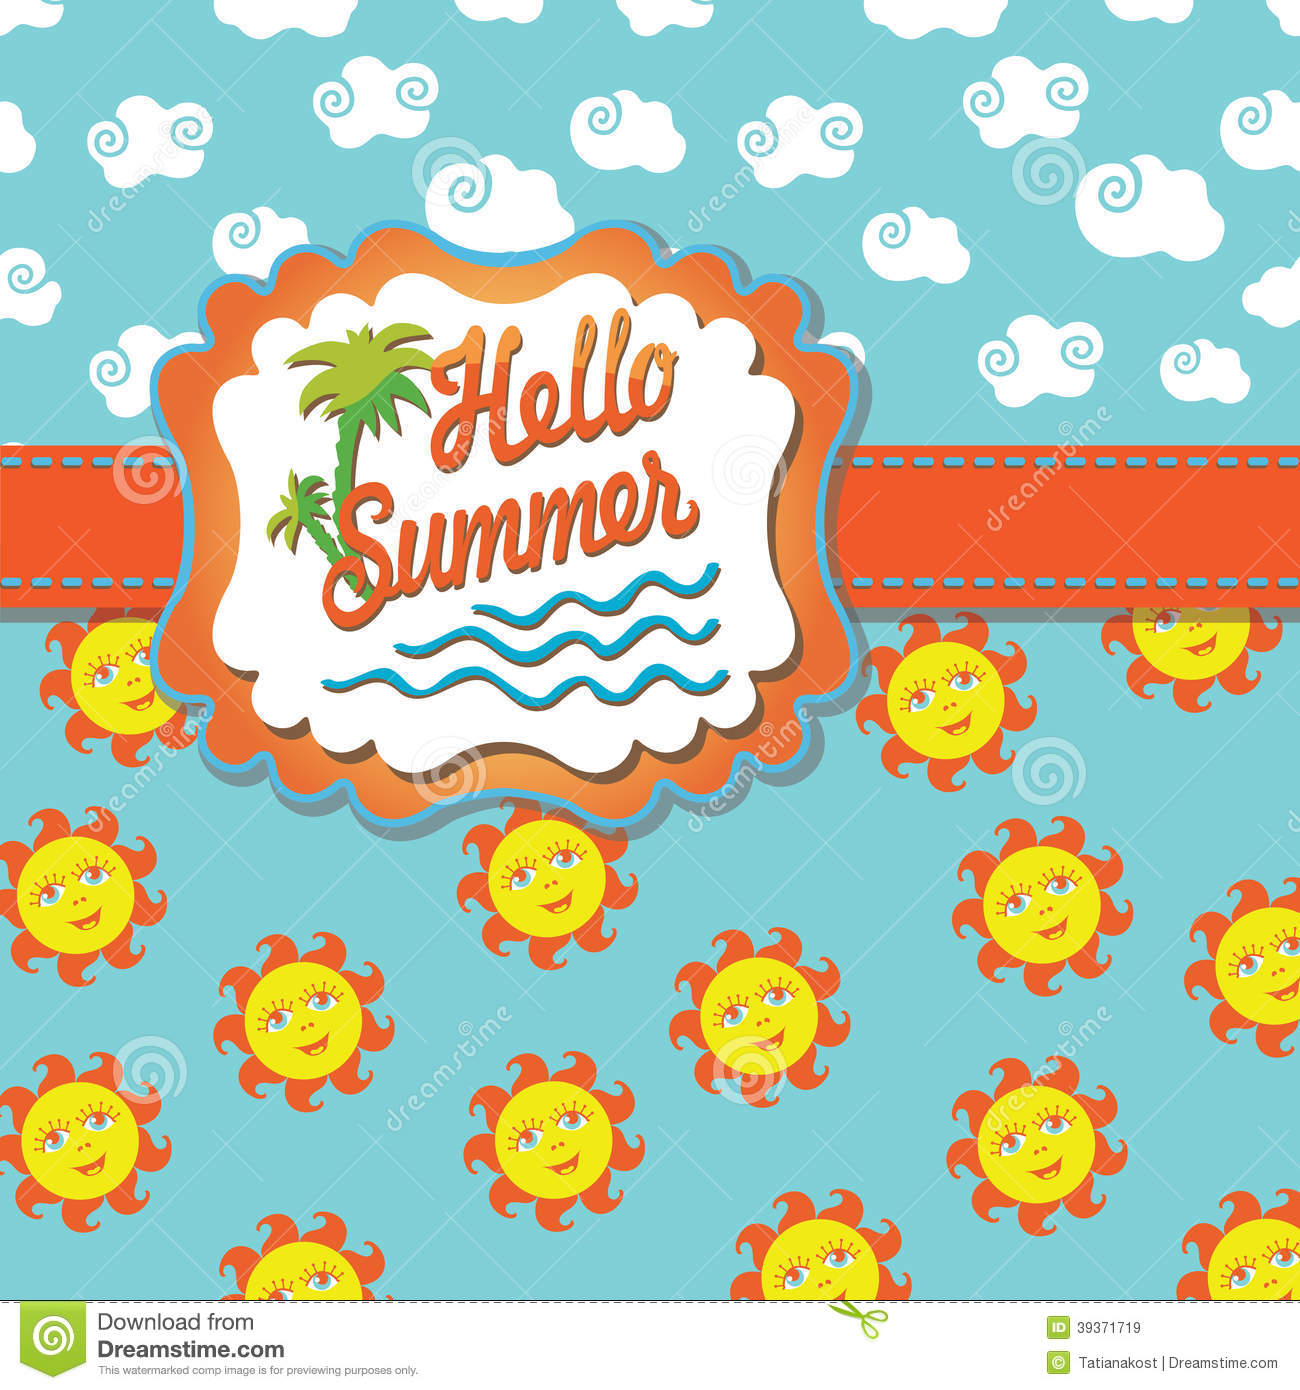 Background Hello Summer With Cartoon Sun And Cloud Stock Vector - Image: 3937...